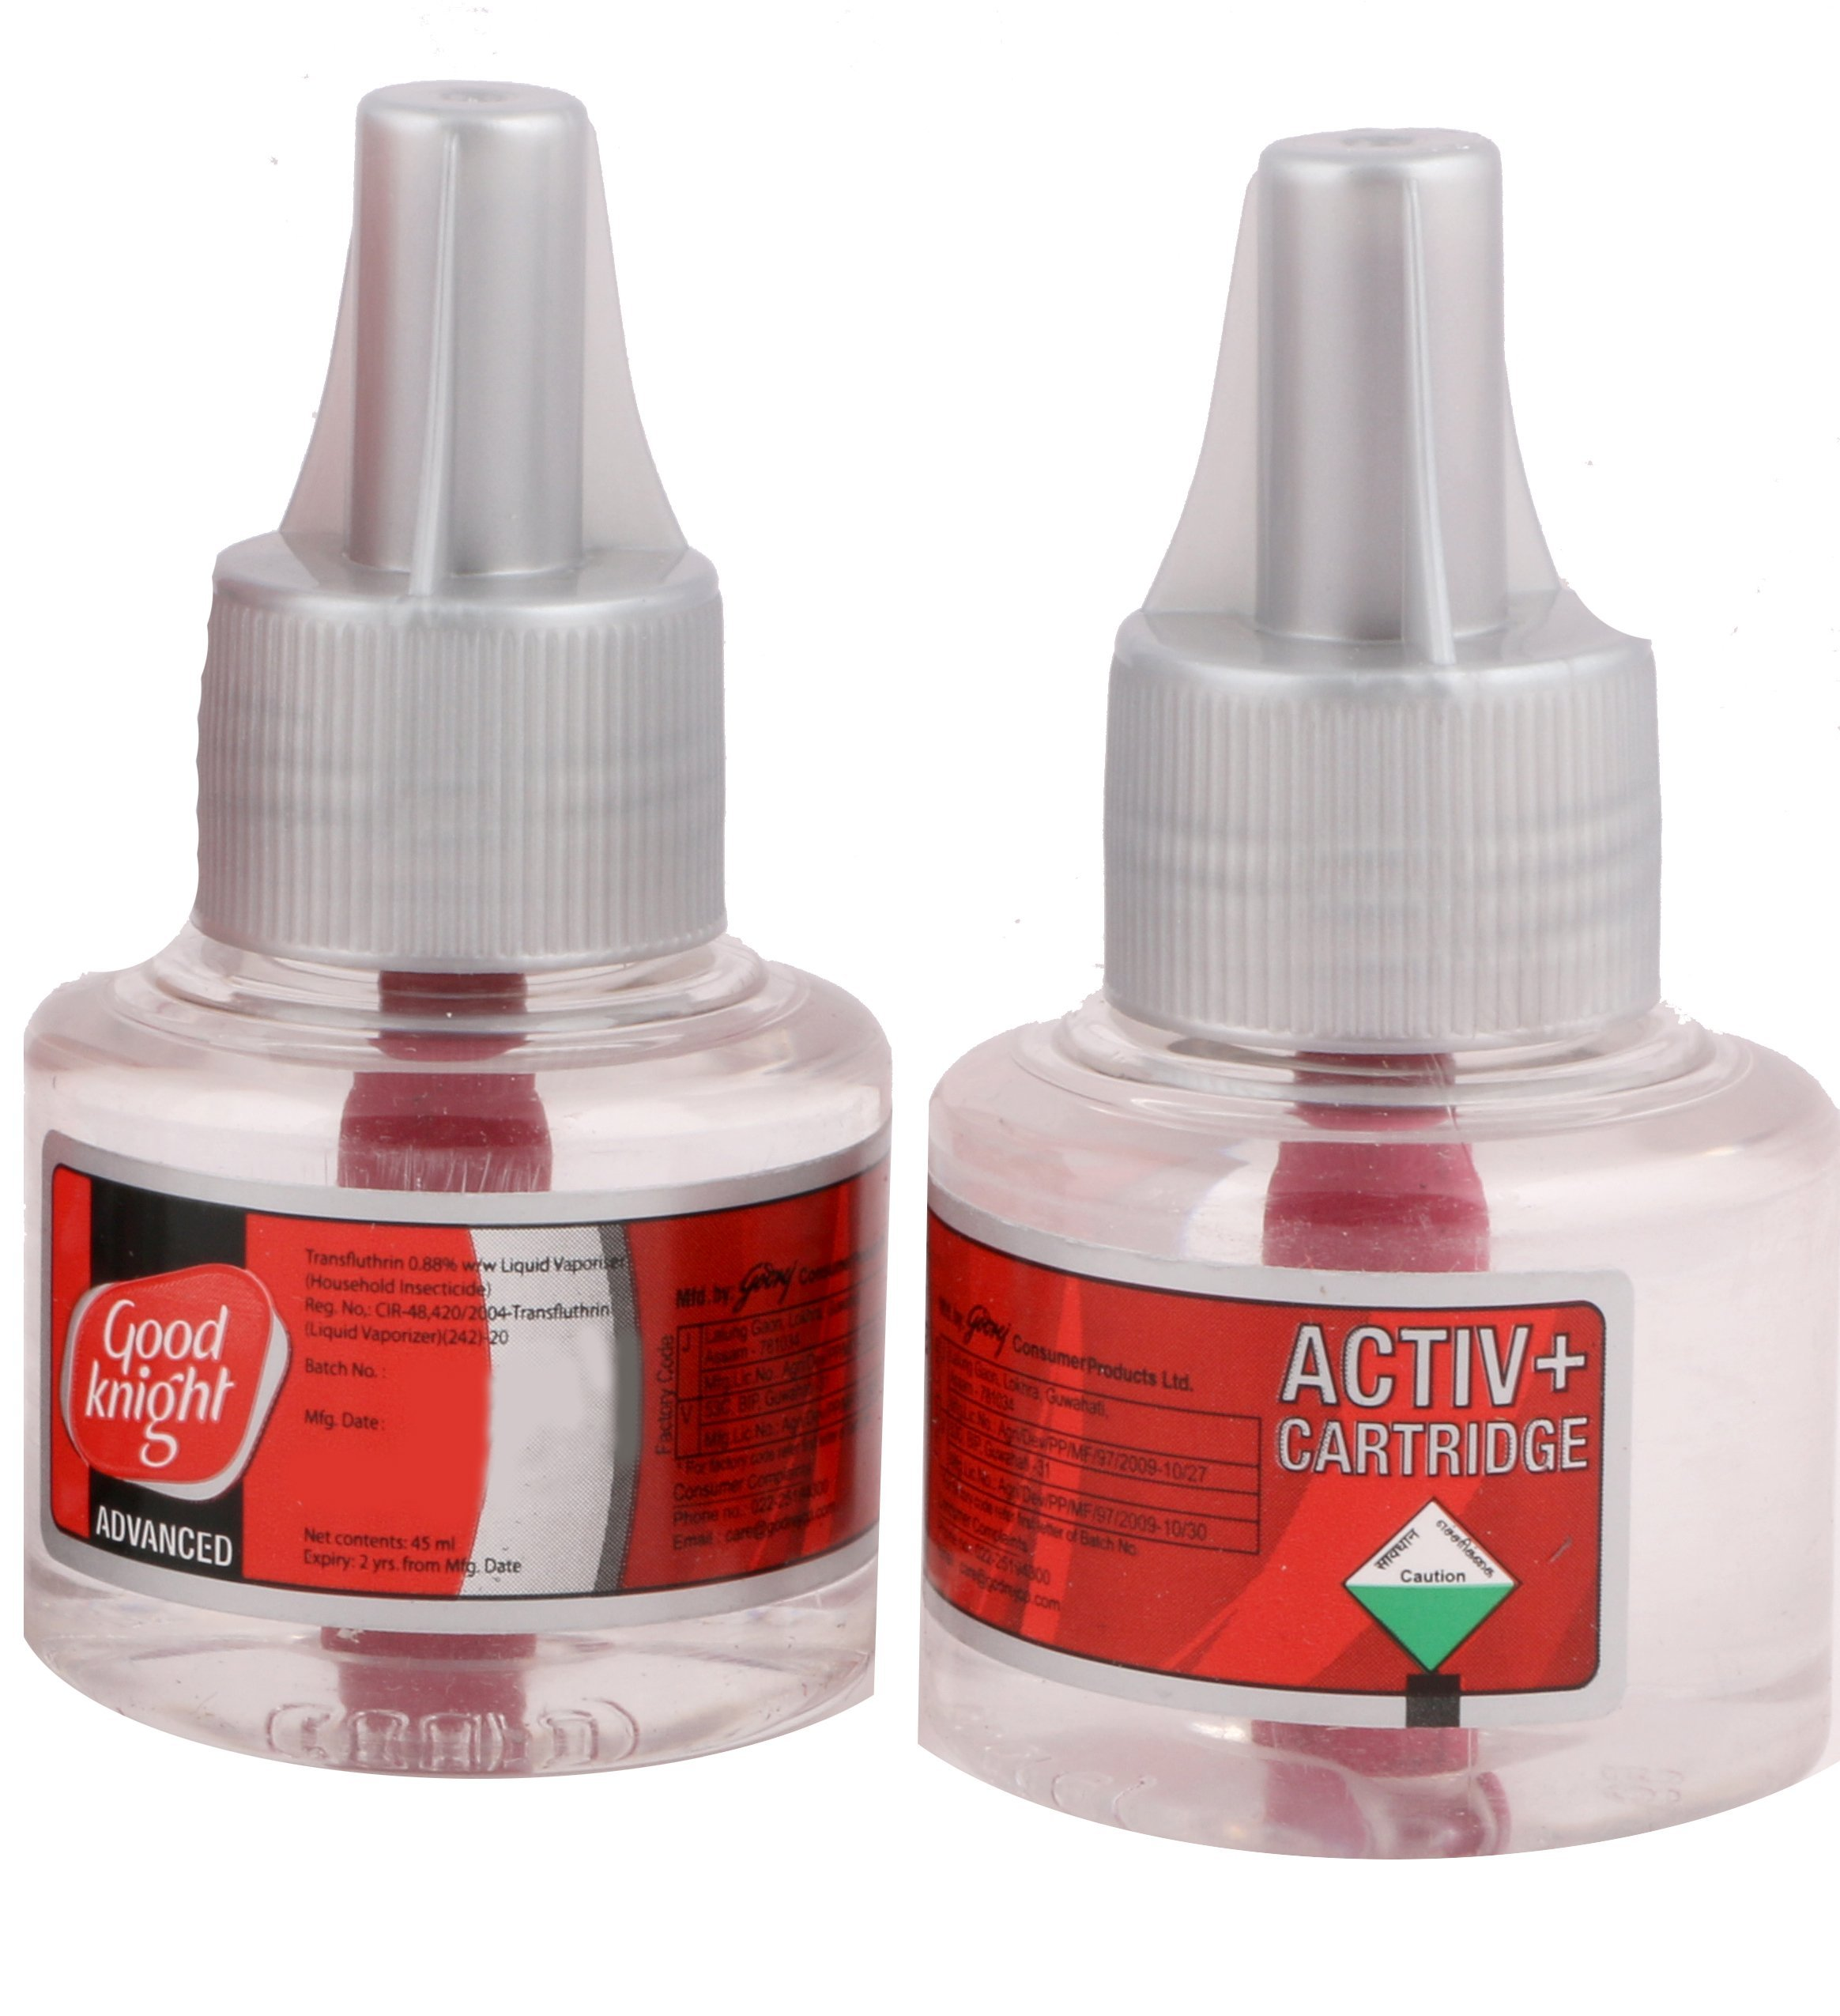 Good knight Activ+ Liquid Refill, 45ml (Pack of 2) Red product image